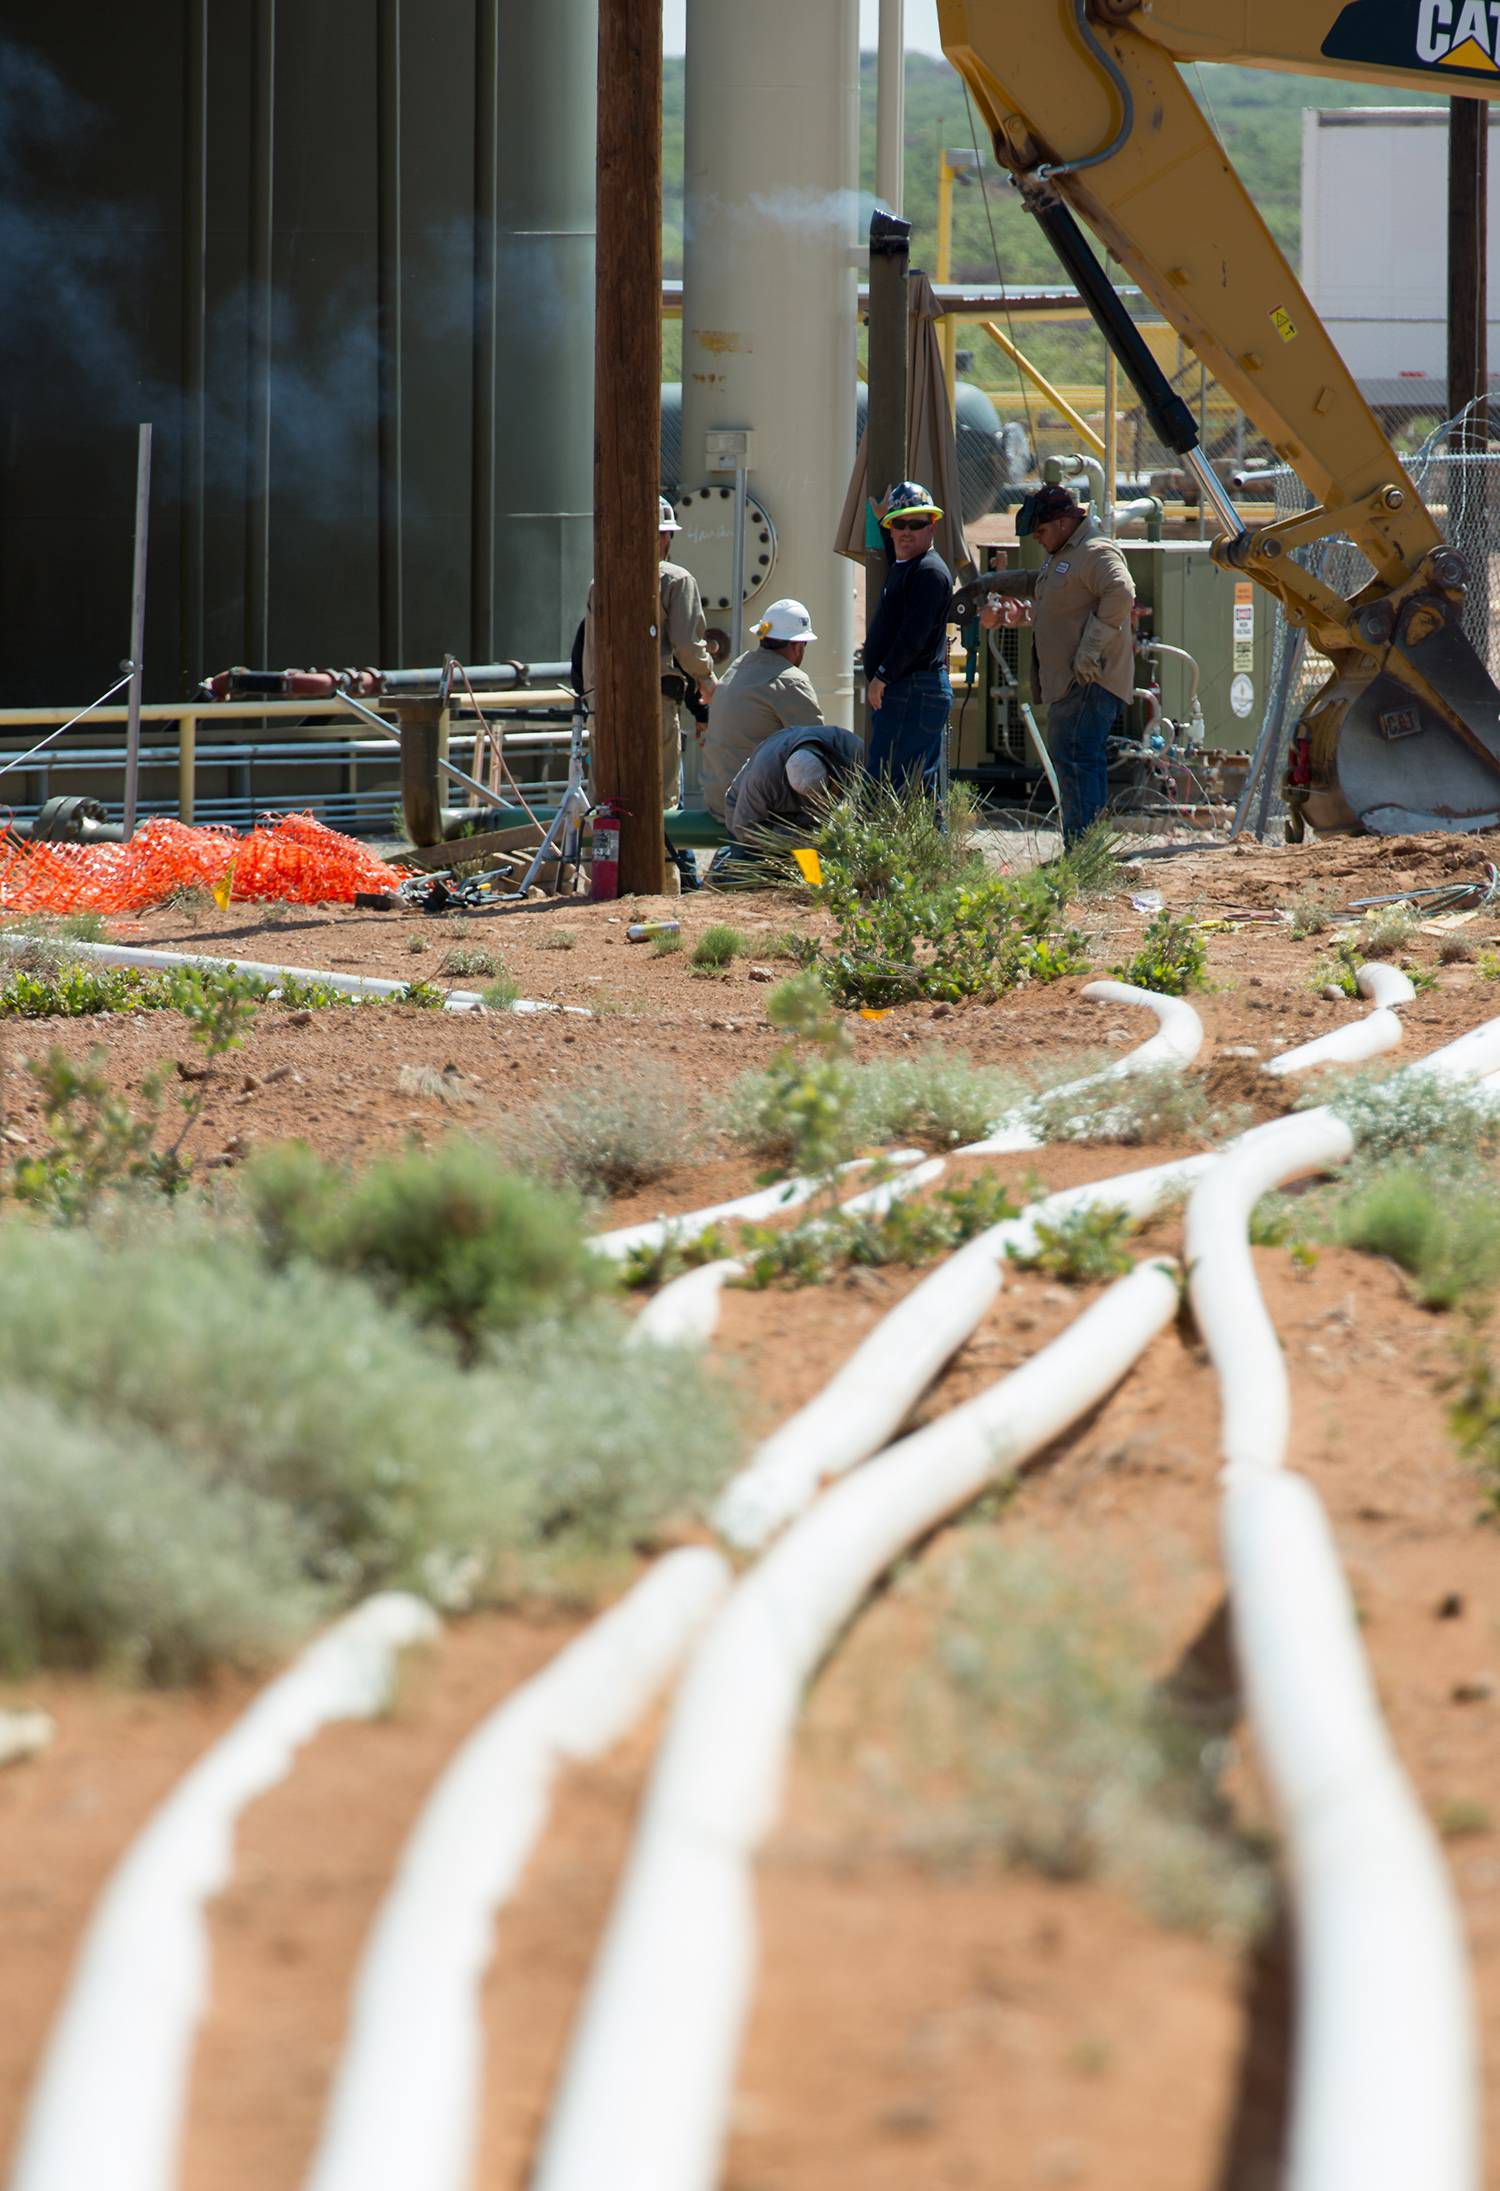 Workers repair oil and gas equipment on public land near Carlsbad, N.M., on May 24, 2018.